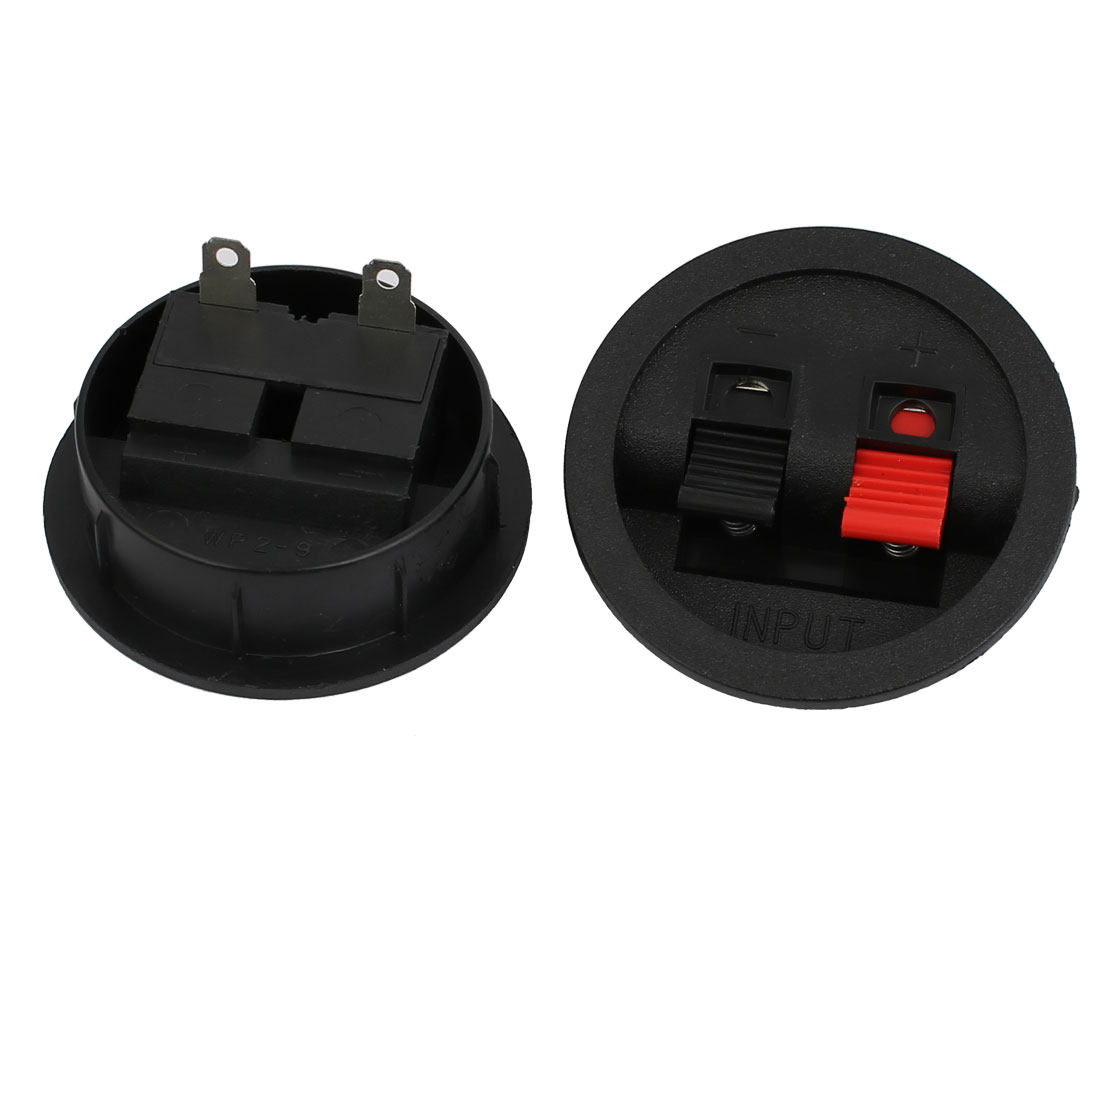 2PCS Binding Spring Post Push Type Circular Speaker Box Terminal Cup